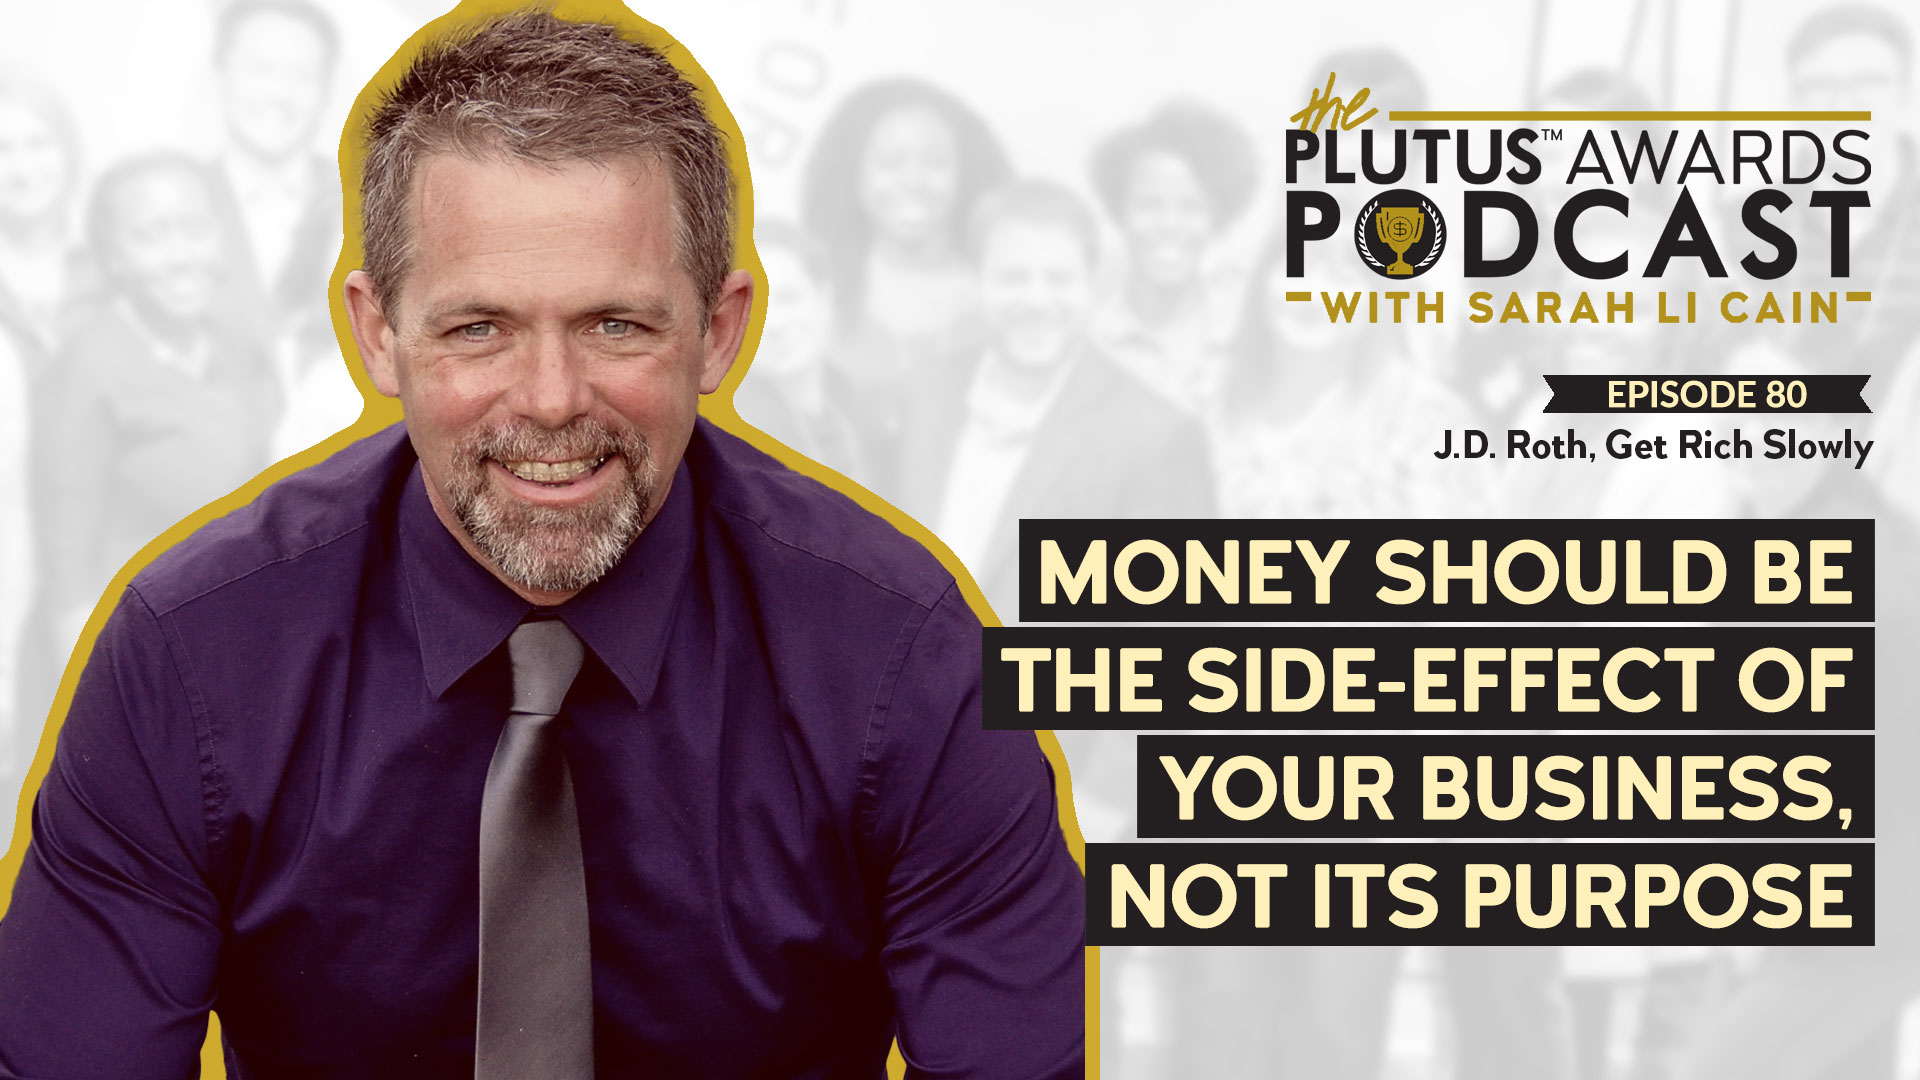 Plutus Awards Podcast - J.D. Roth Featured Image